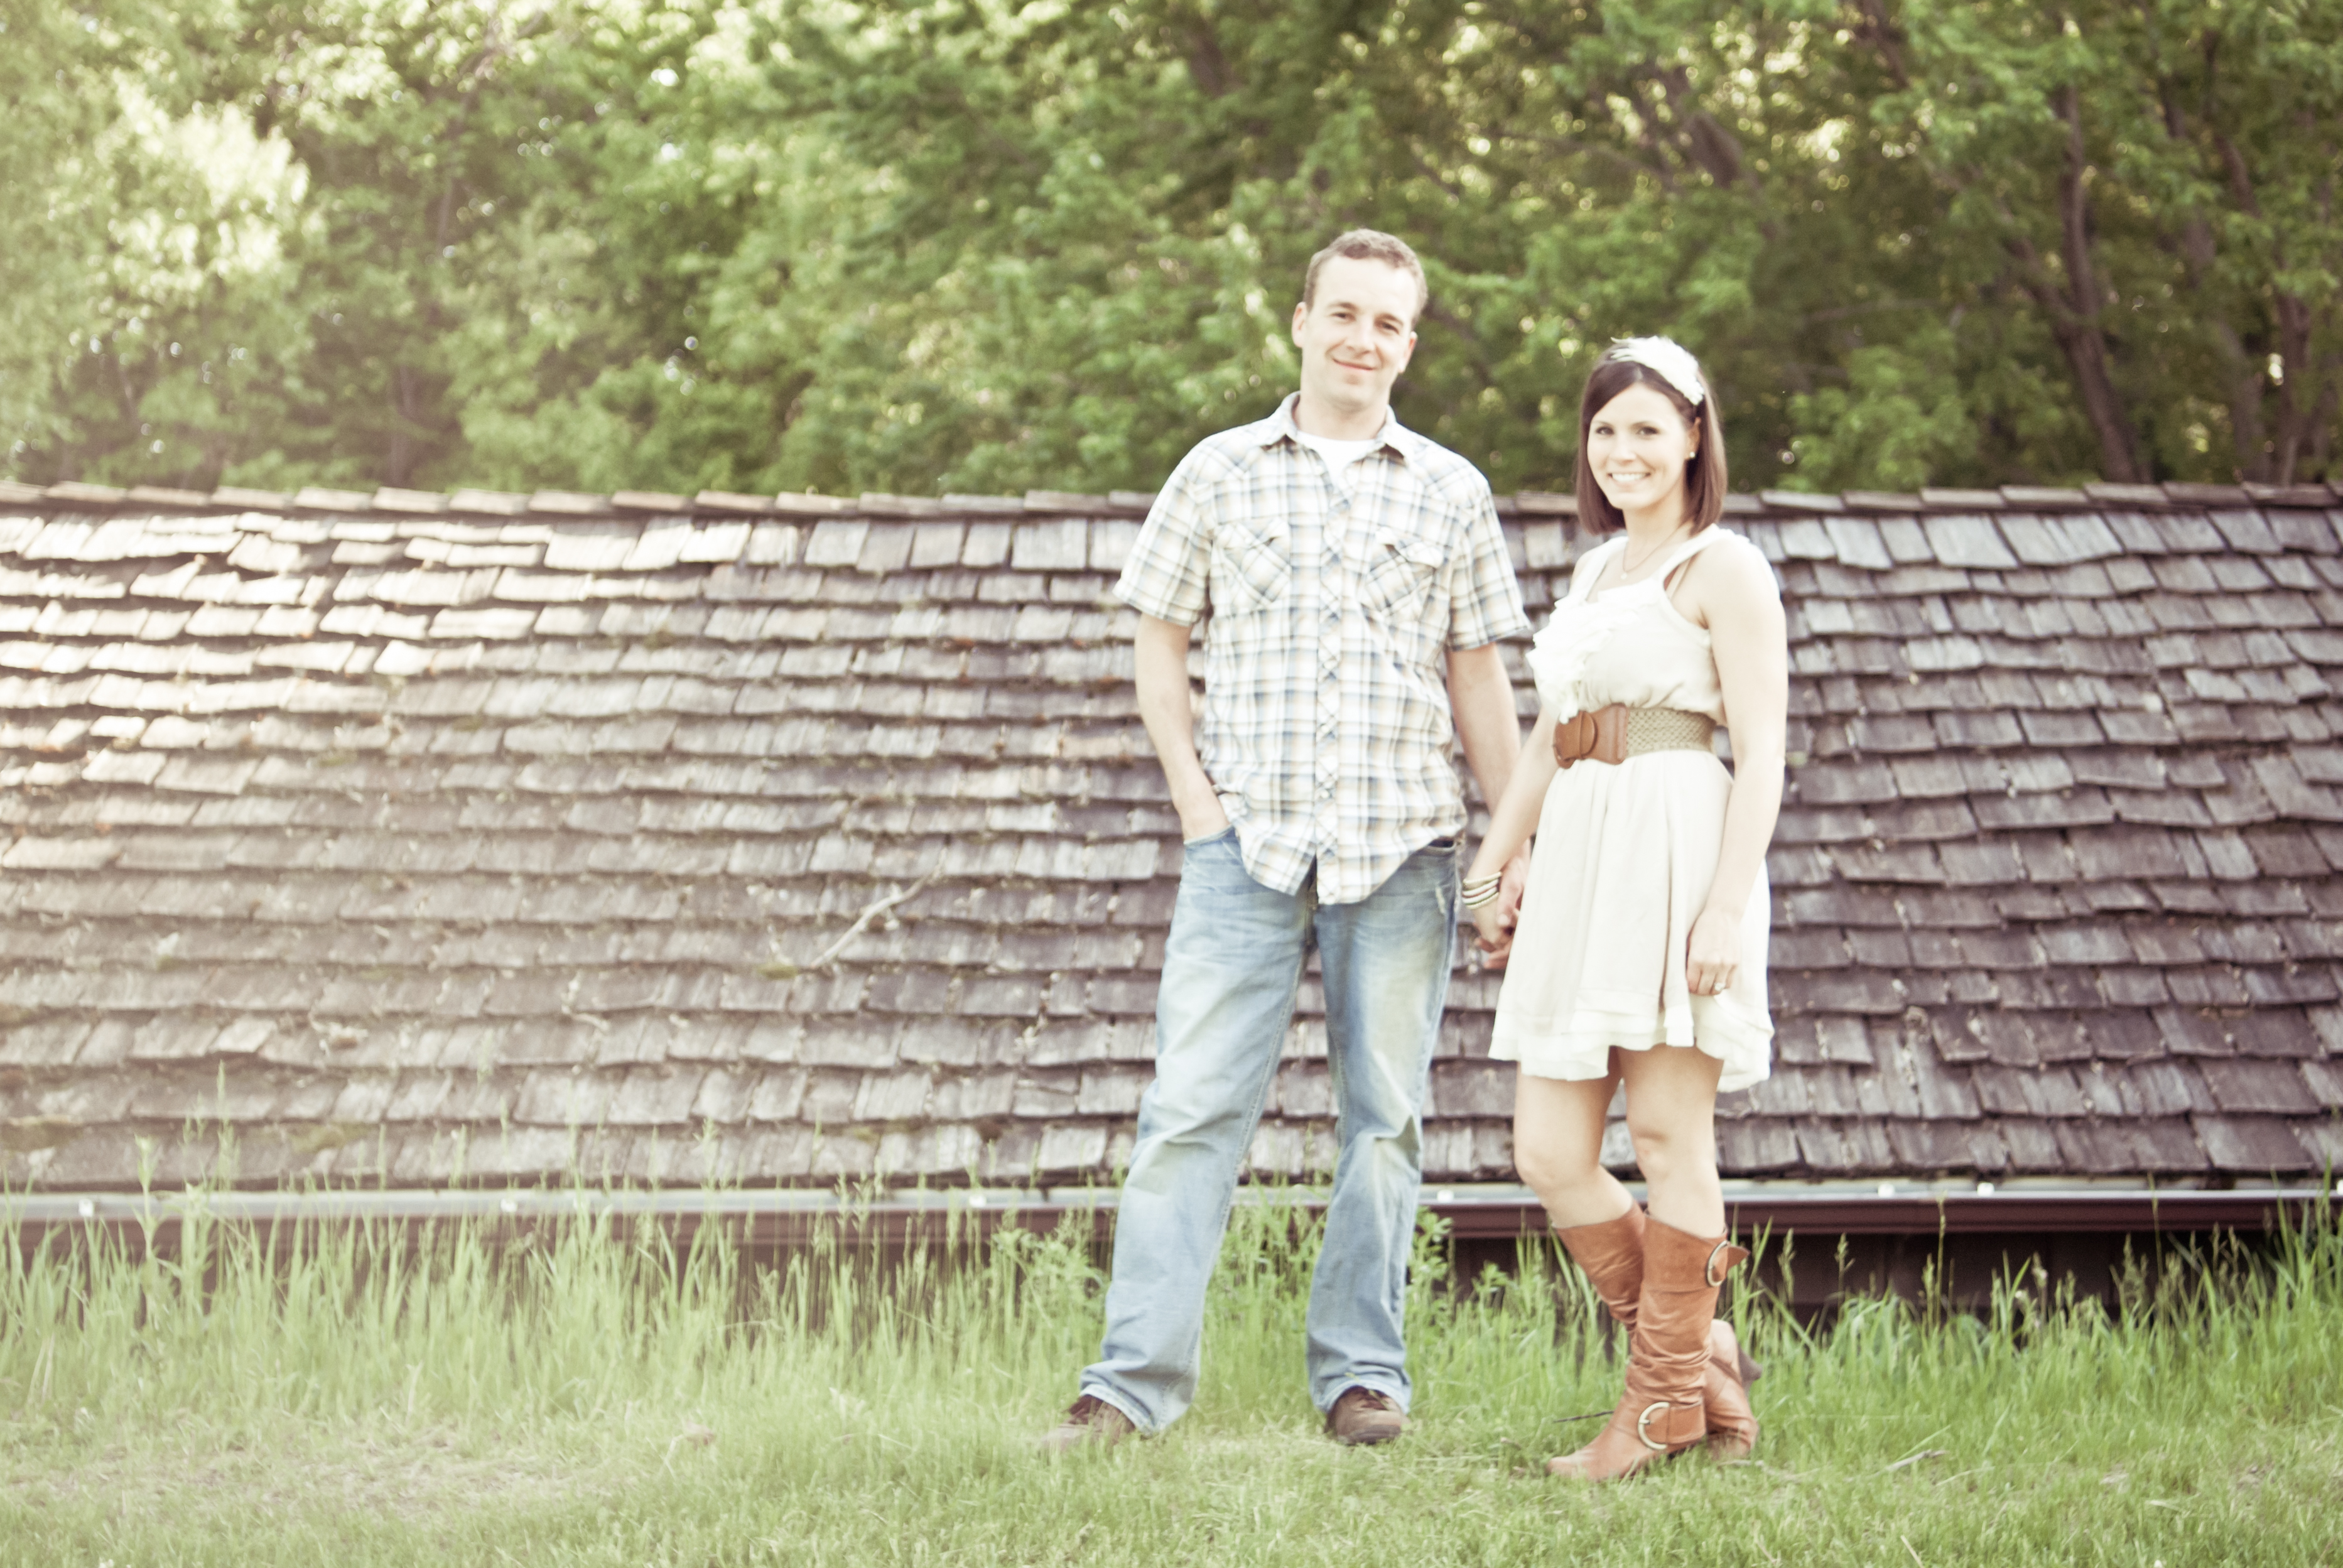 Rustic, Home, Engagement, Farm, Log